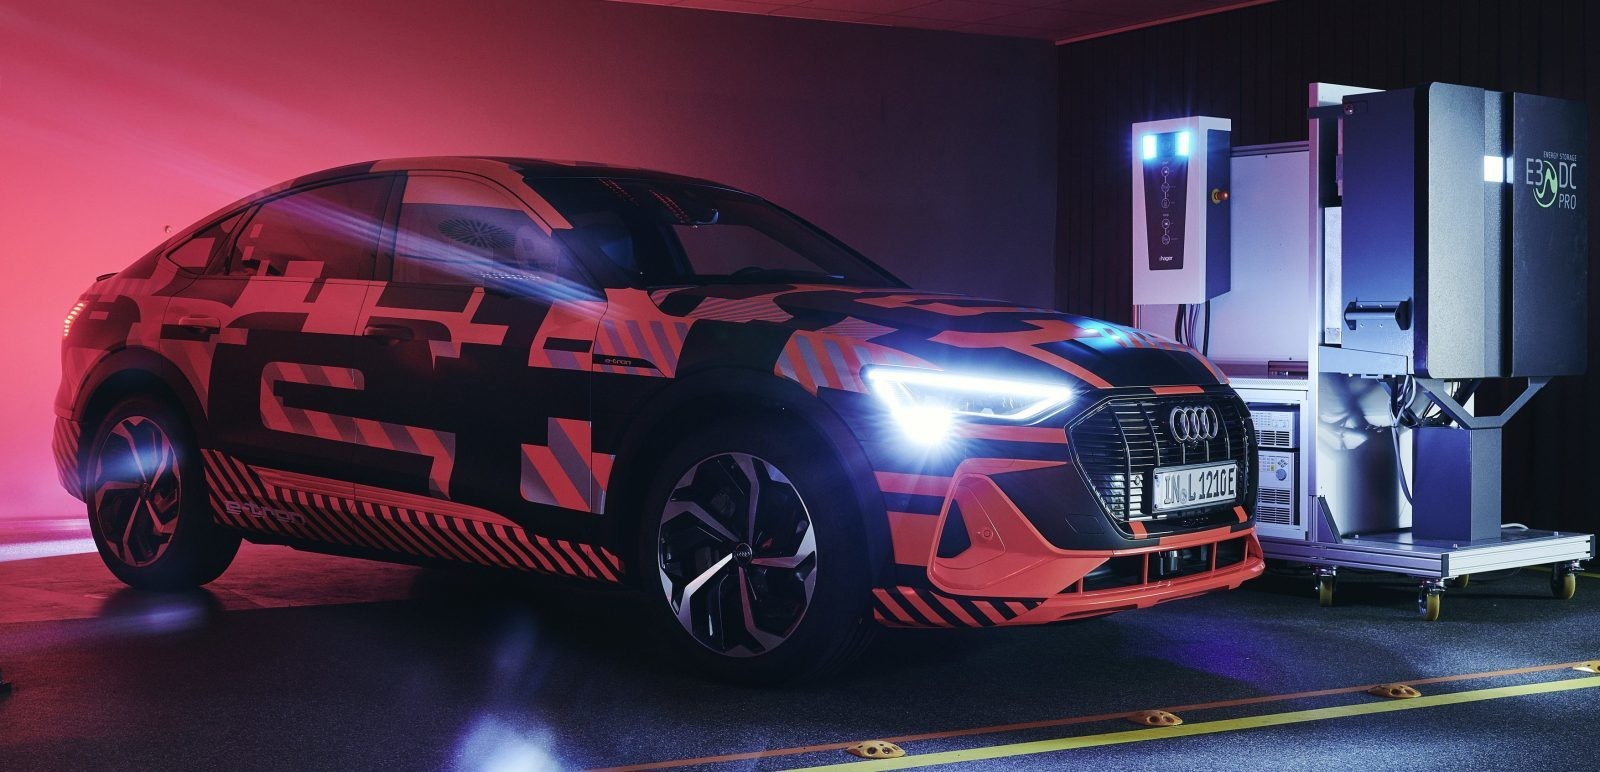 Audi tests new bi-directional charging for electric cars to store solar energy - Electrek